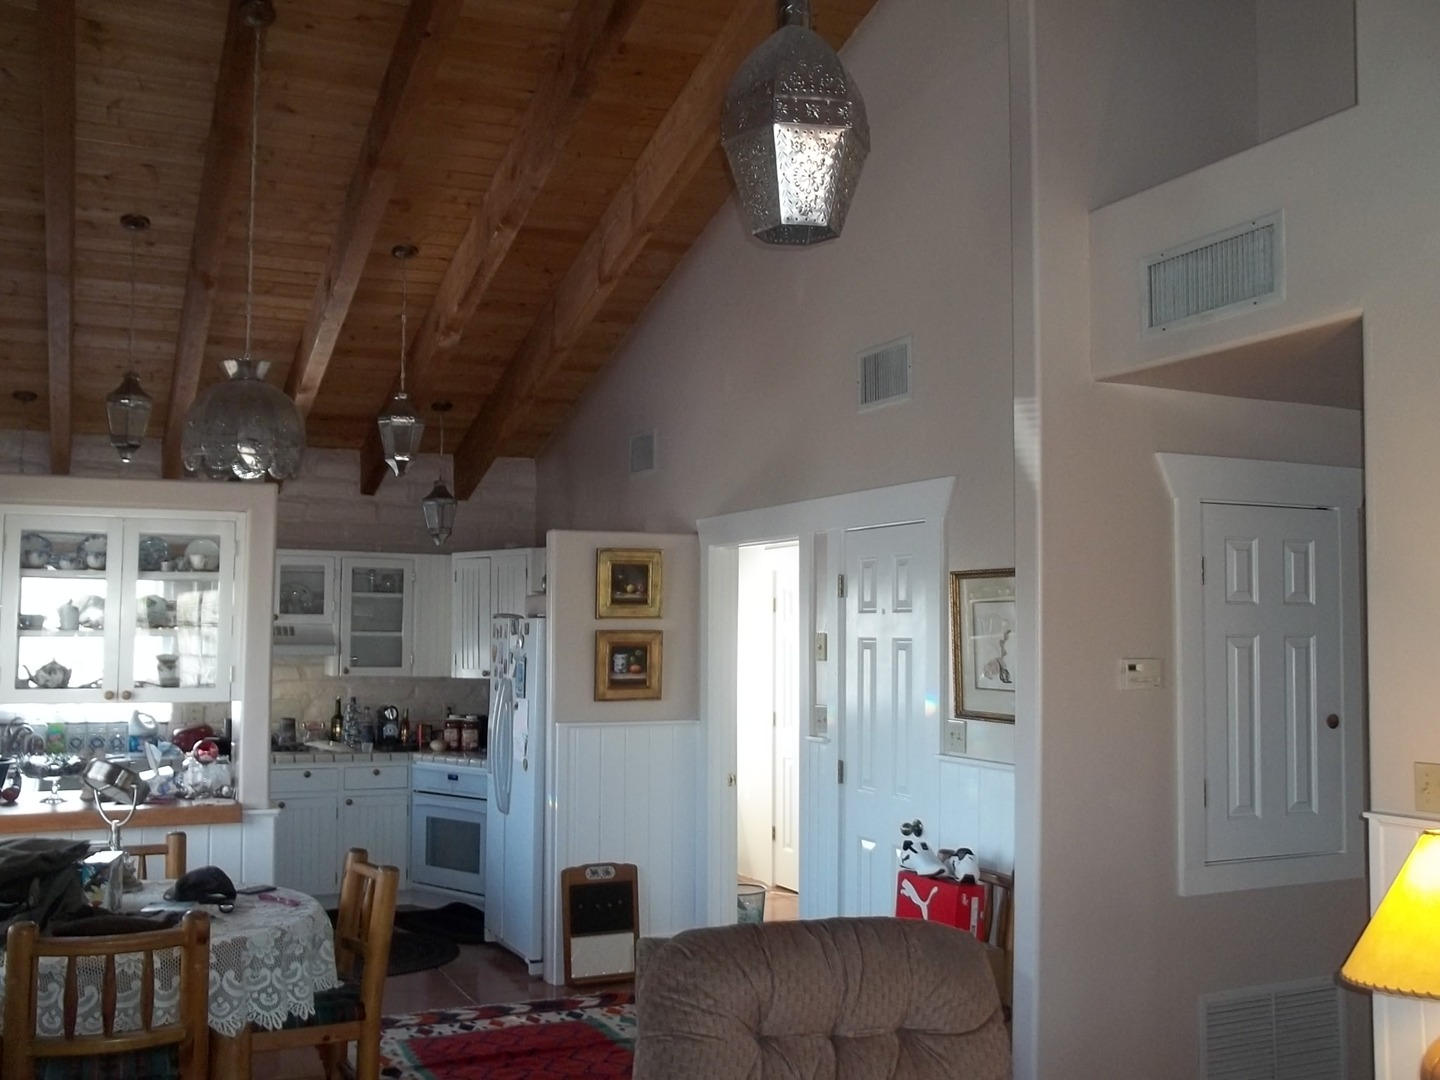 repairs and remodeling kitchen remodeling tucson az Remodeling Tucson AZ and surrounding areas